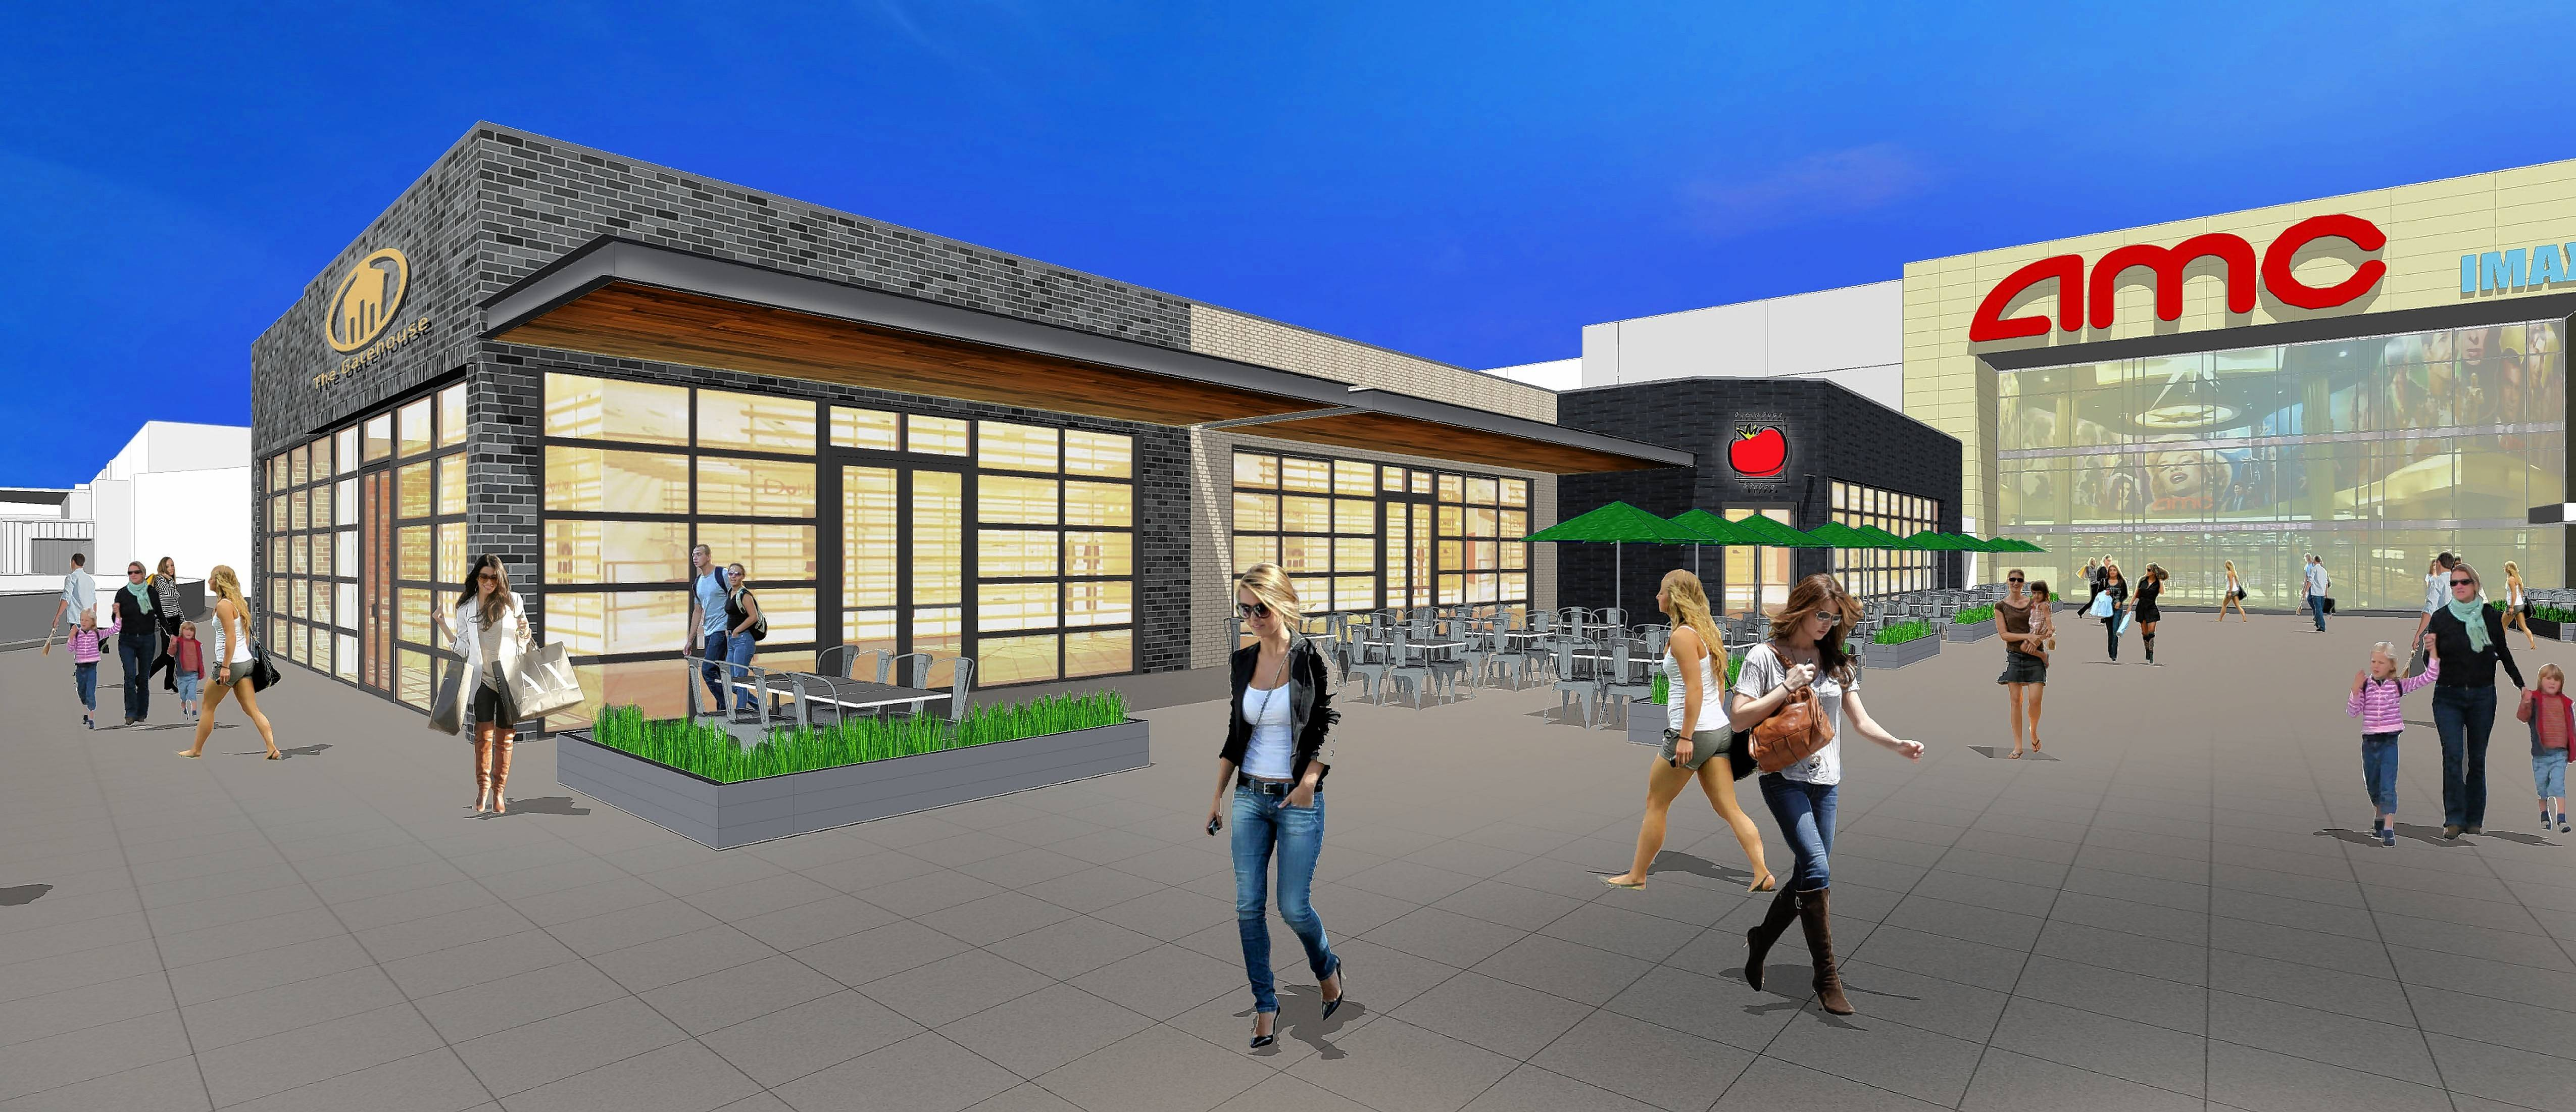 oakbrook center restaurants il. nearly a dozen food vendors and restaurants are expected to open in the next few months oakbrook center il n